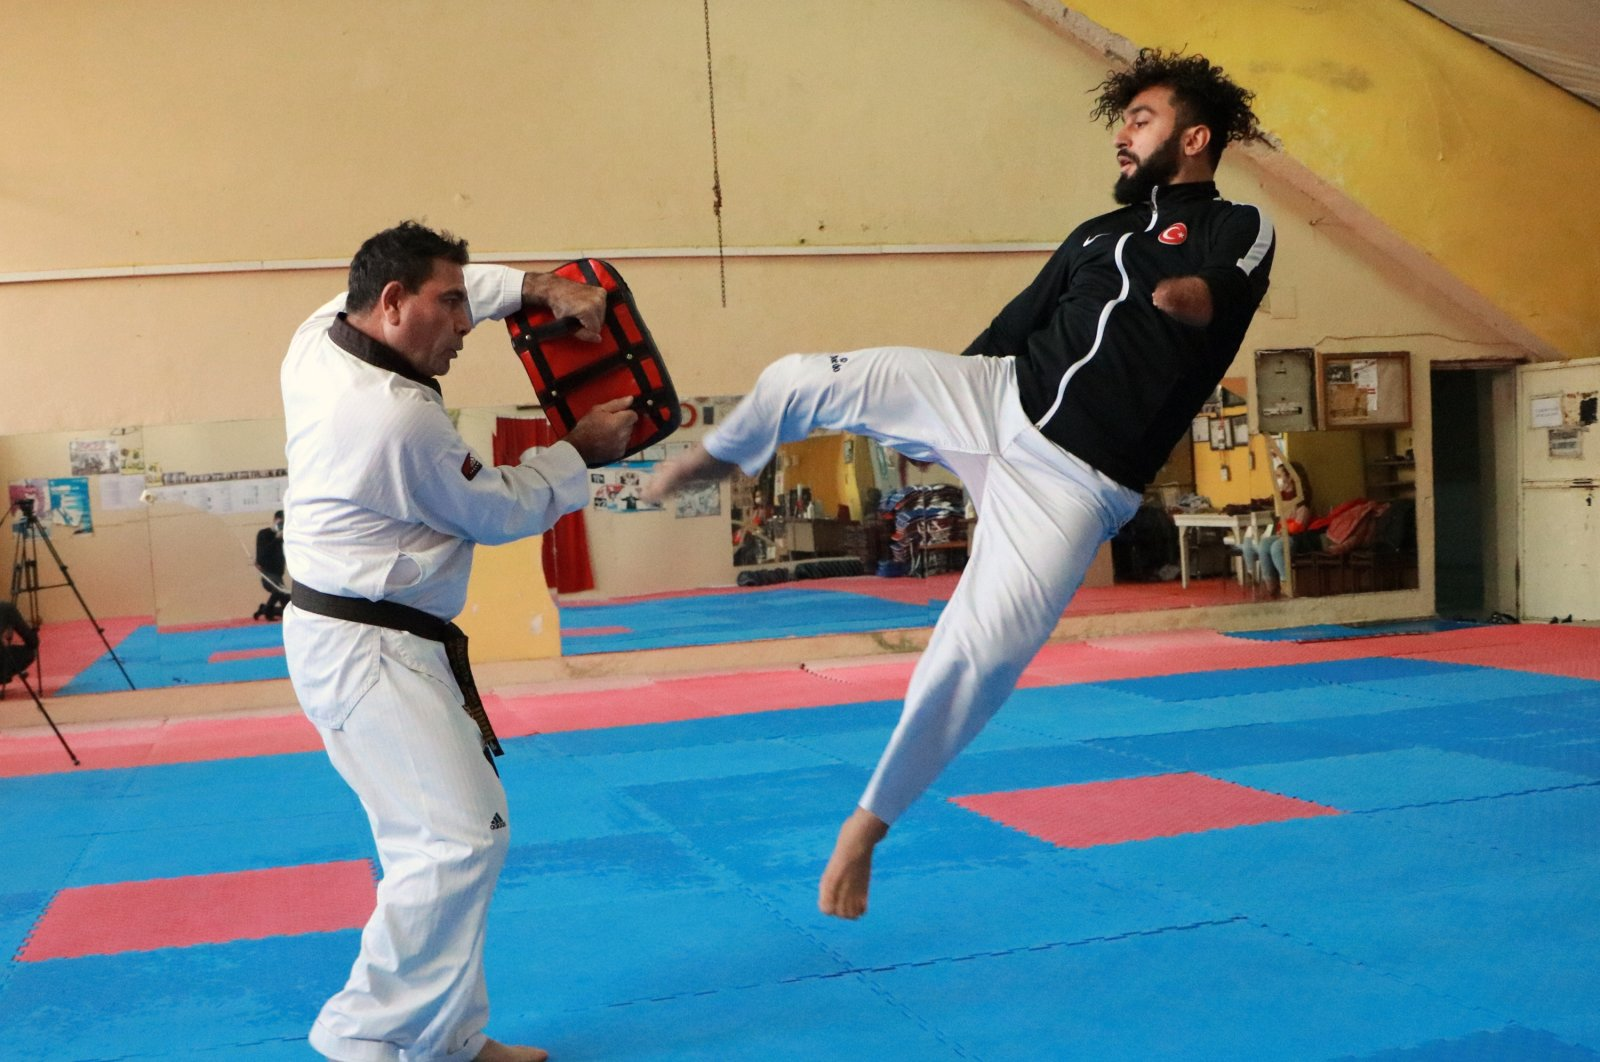 Fatih Çelik practices during a training session, in Adana, southern Turkey, Dec. 3, 2020. (DHA Photo)